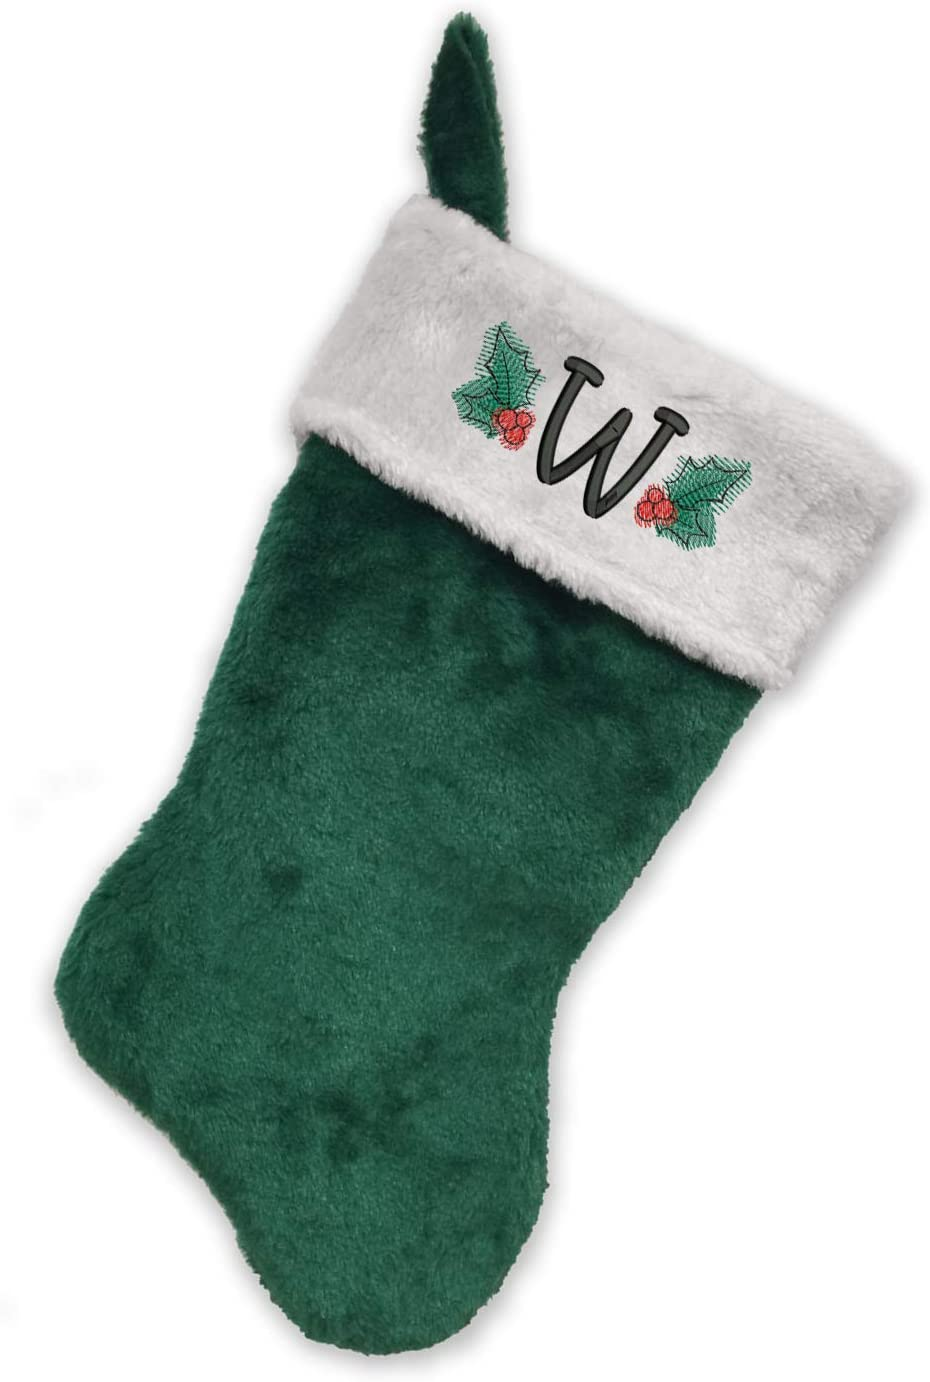 Monogrammed Me Embroidered Initial Christmas Stocking, Green and White Plush, Initial W